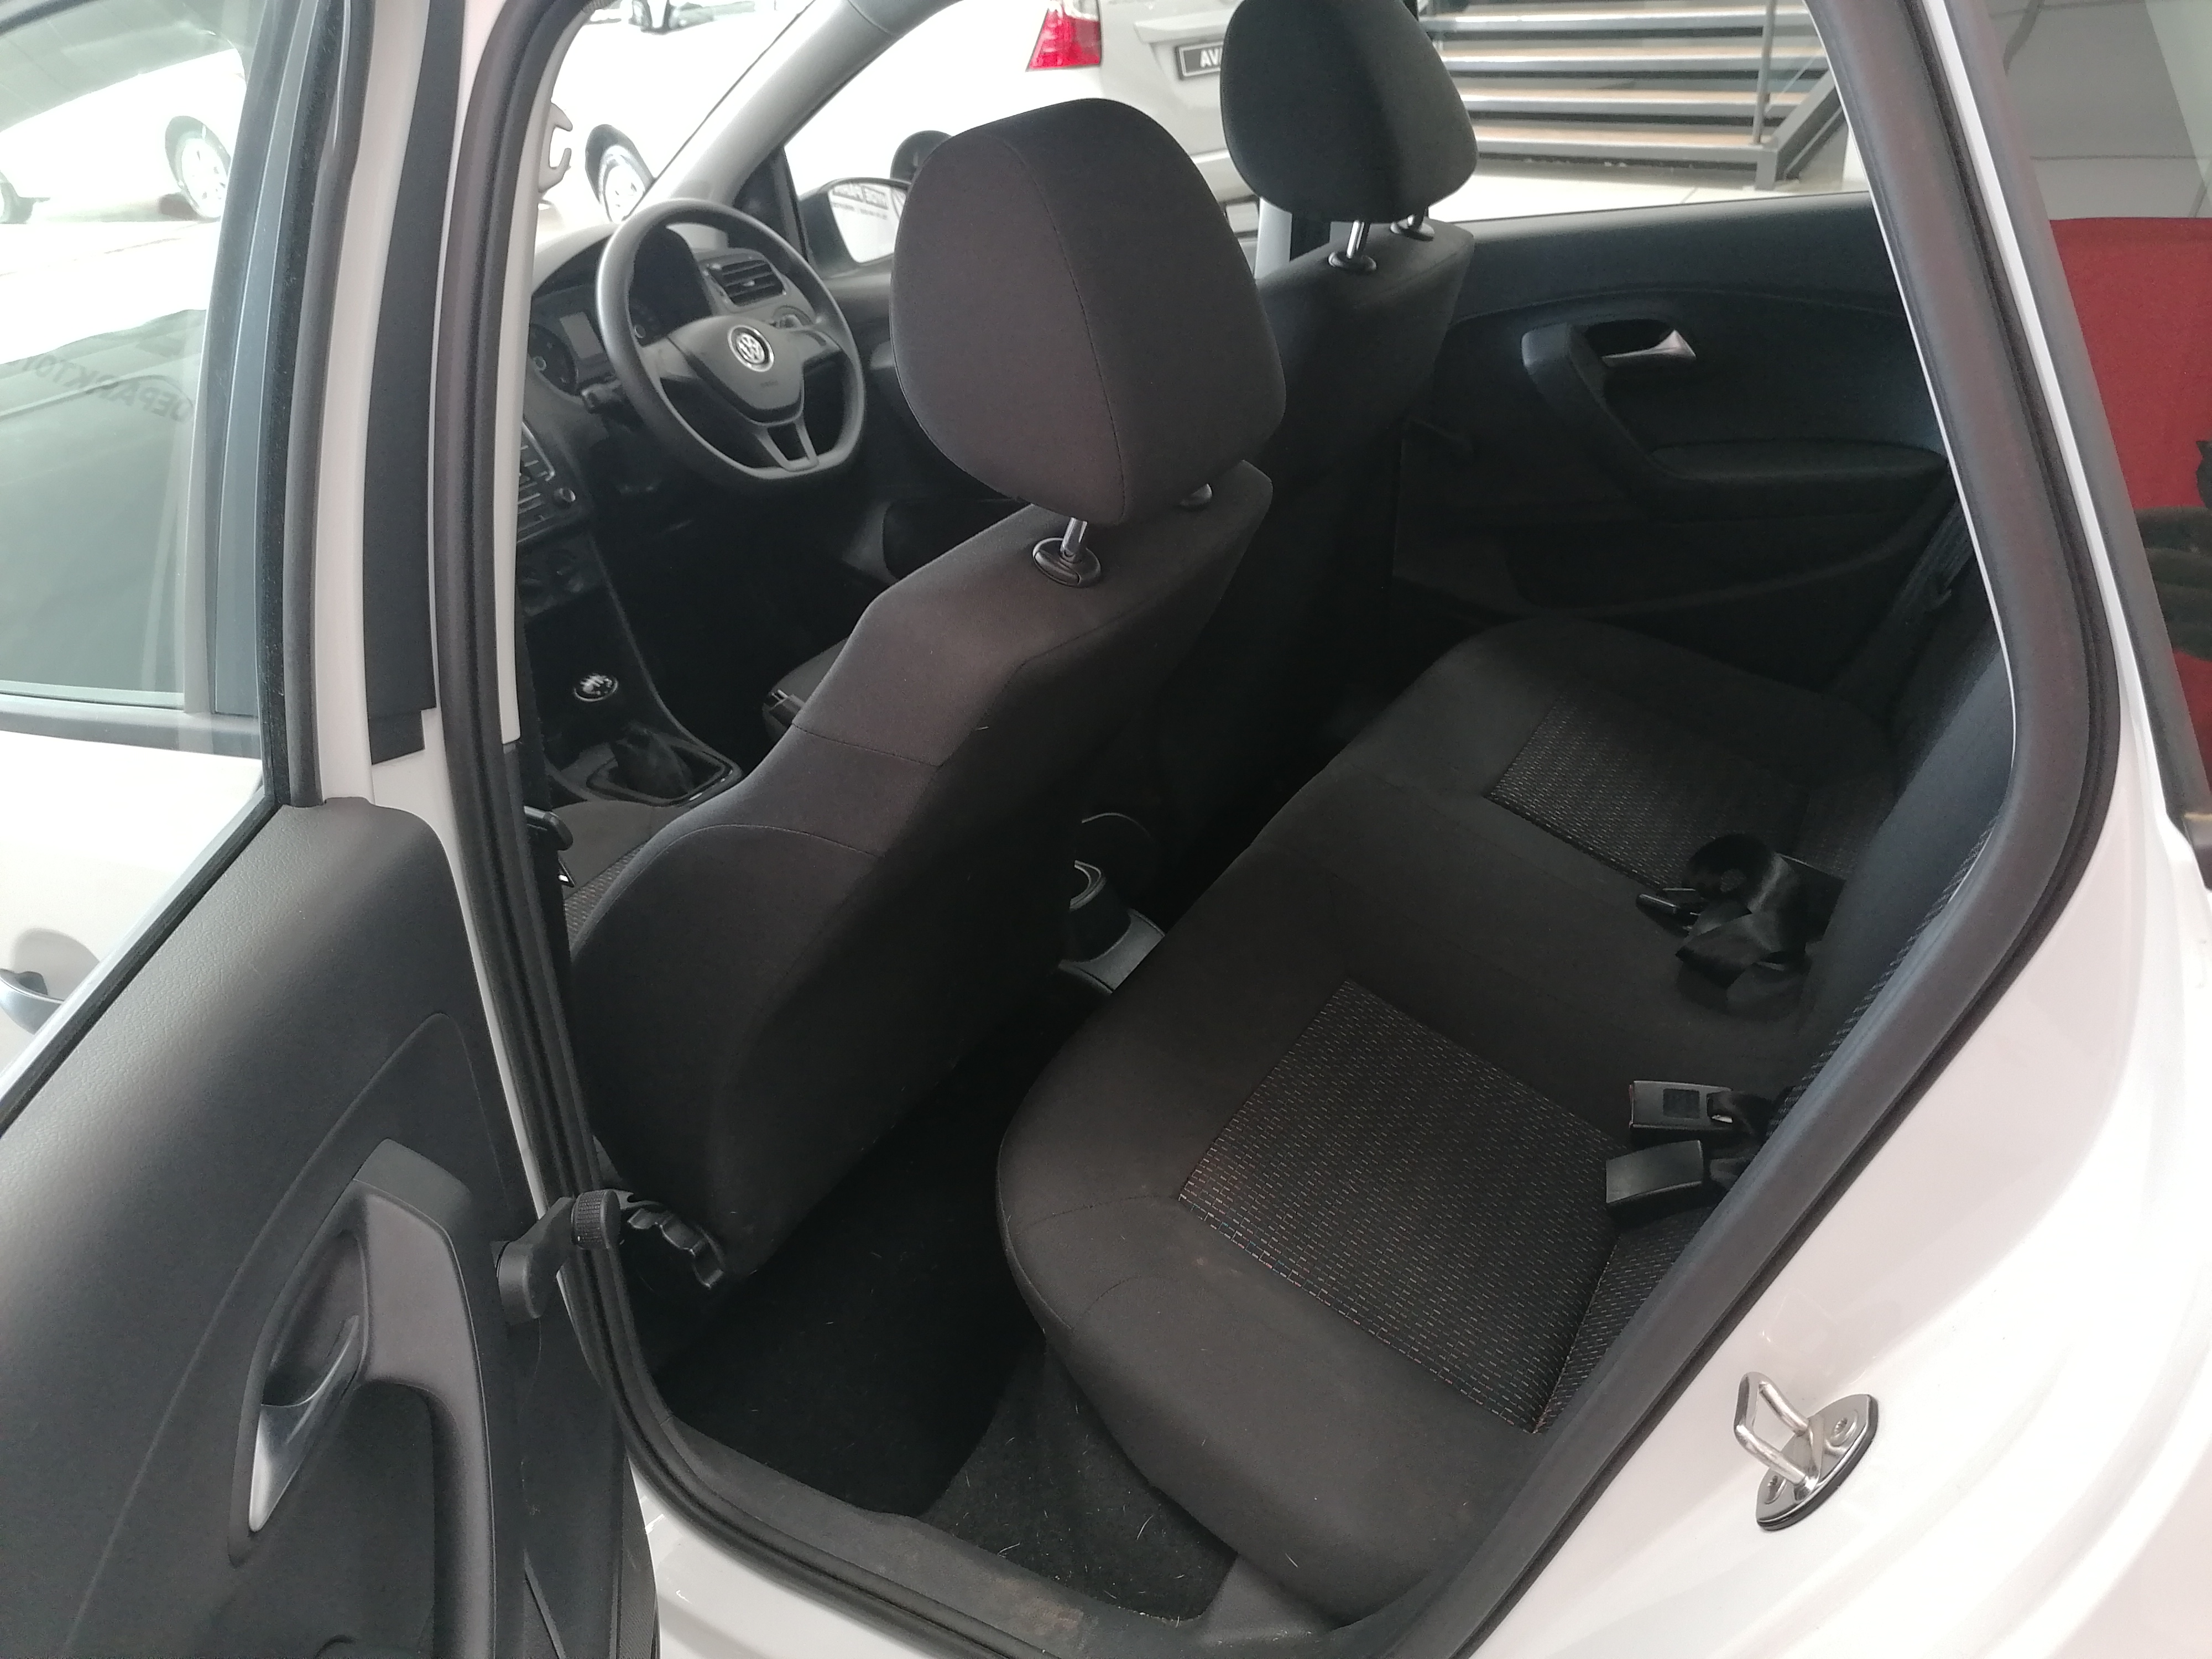 VOLKSWAGEN POLO VIVO 1.4 TRENDLINE (5DR) - Additional